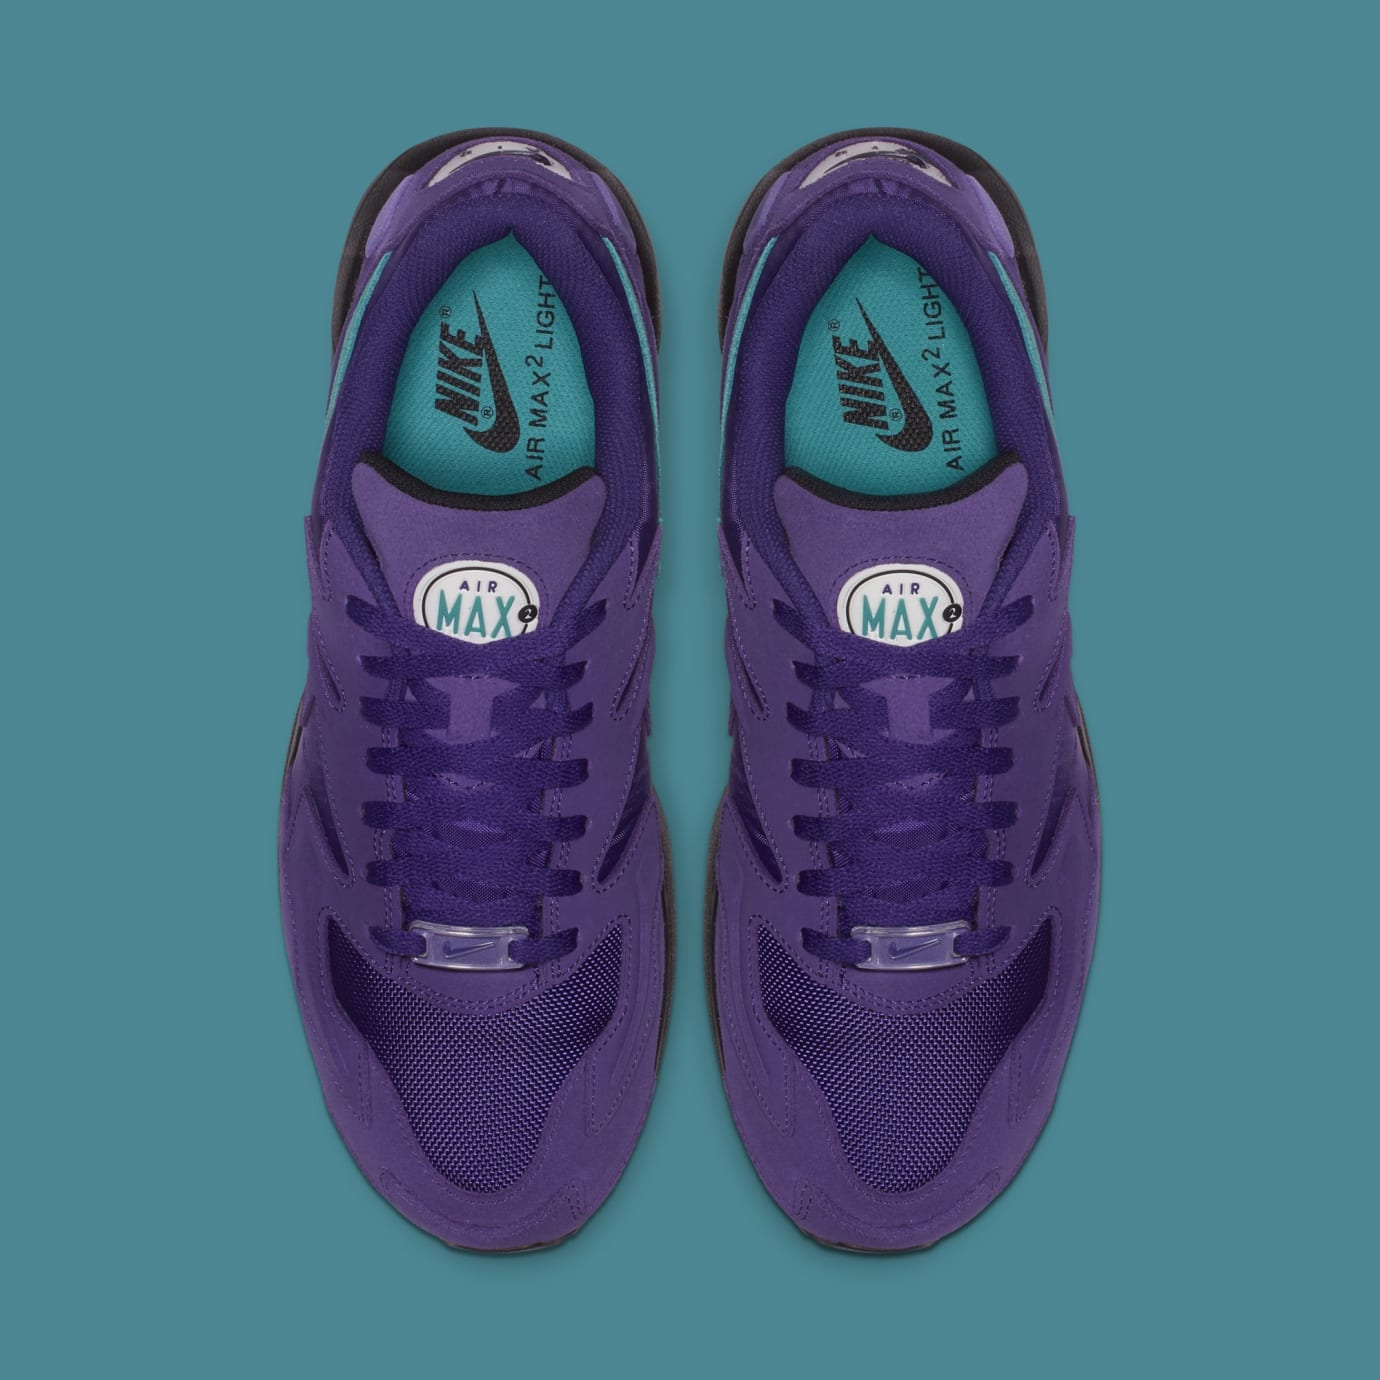 Nike Air Max2 Light 'Purple' AO1741-500 (Top)